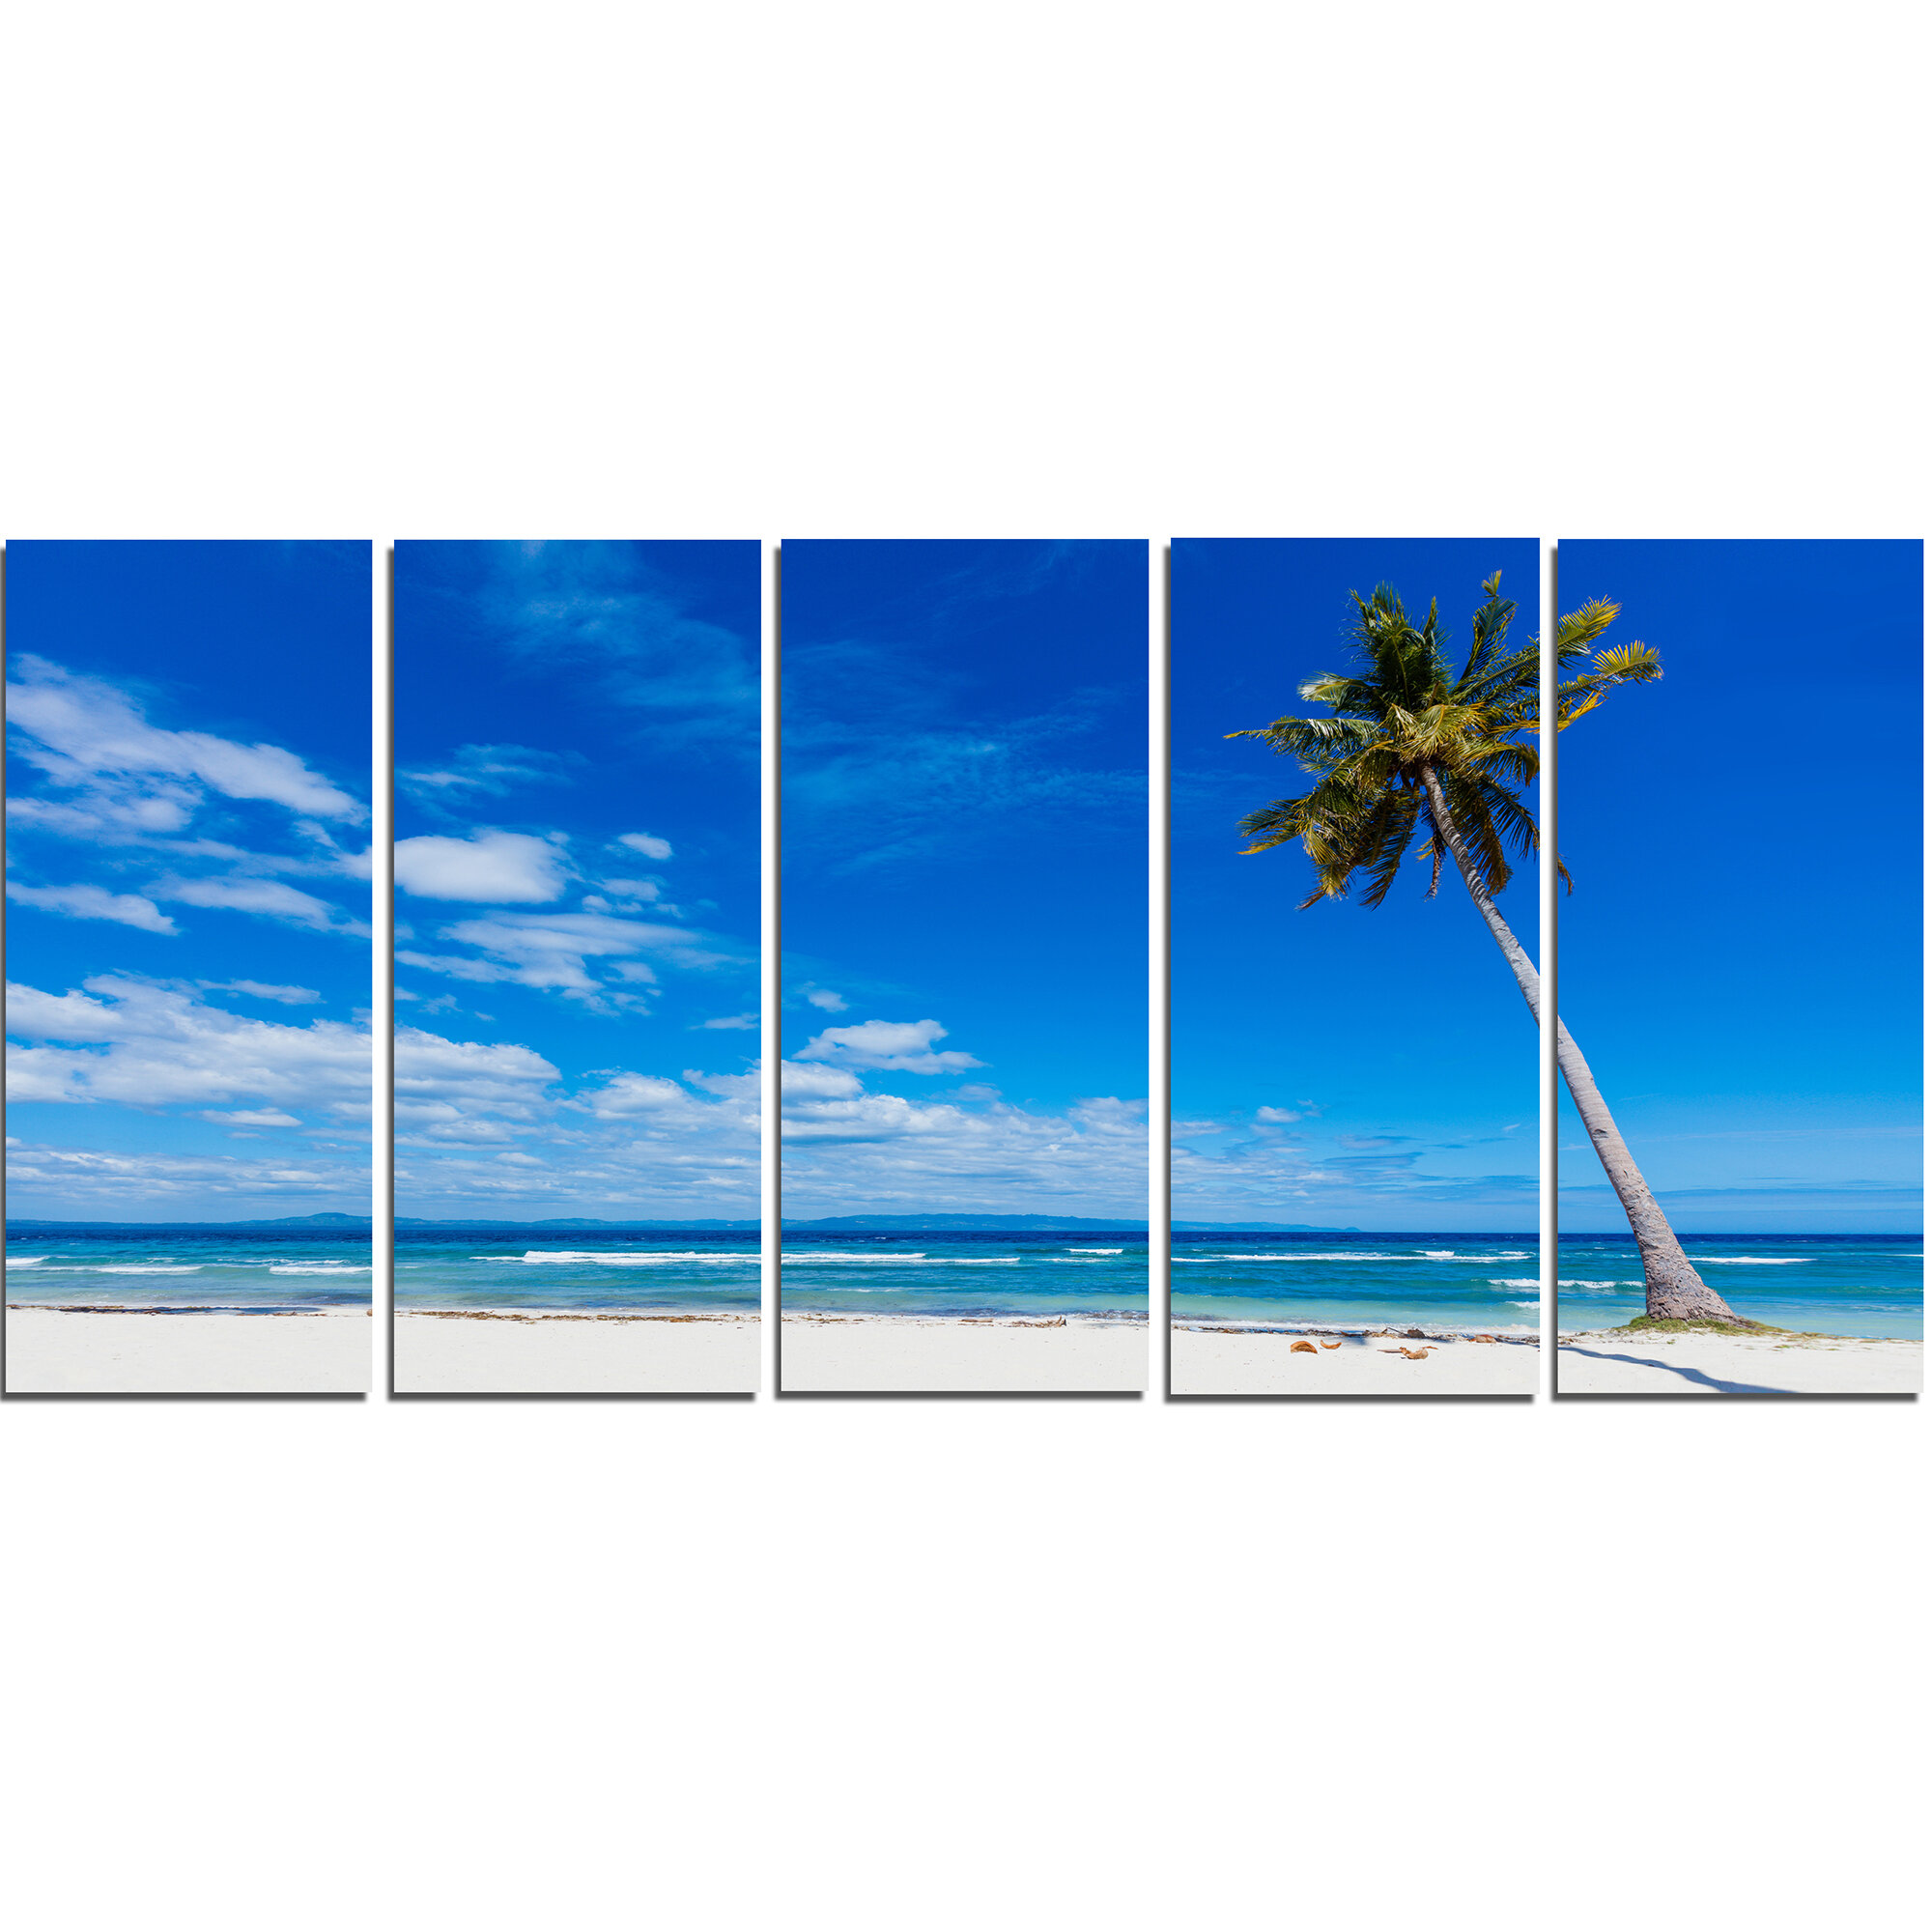 Designart Calm Summer Vacation Beach Philippines 5 Piece Photographic Print On Wrapped Canvas Set